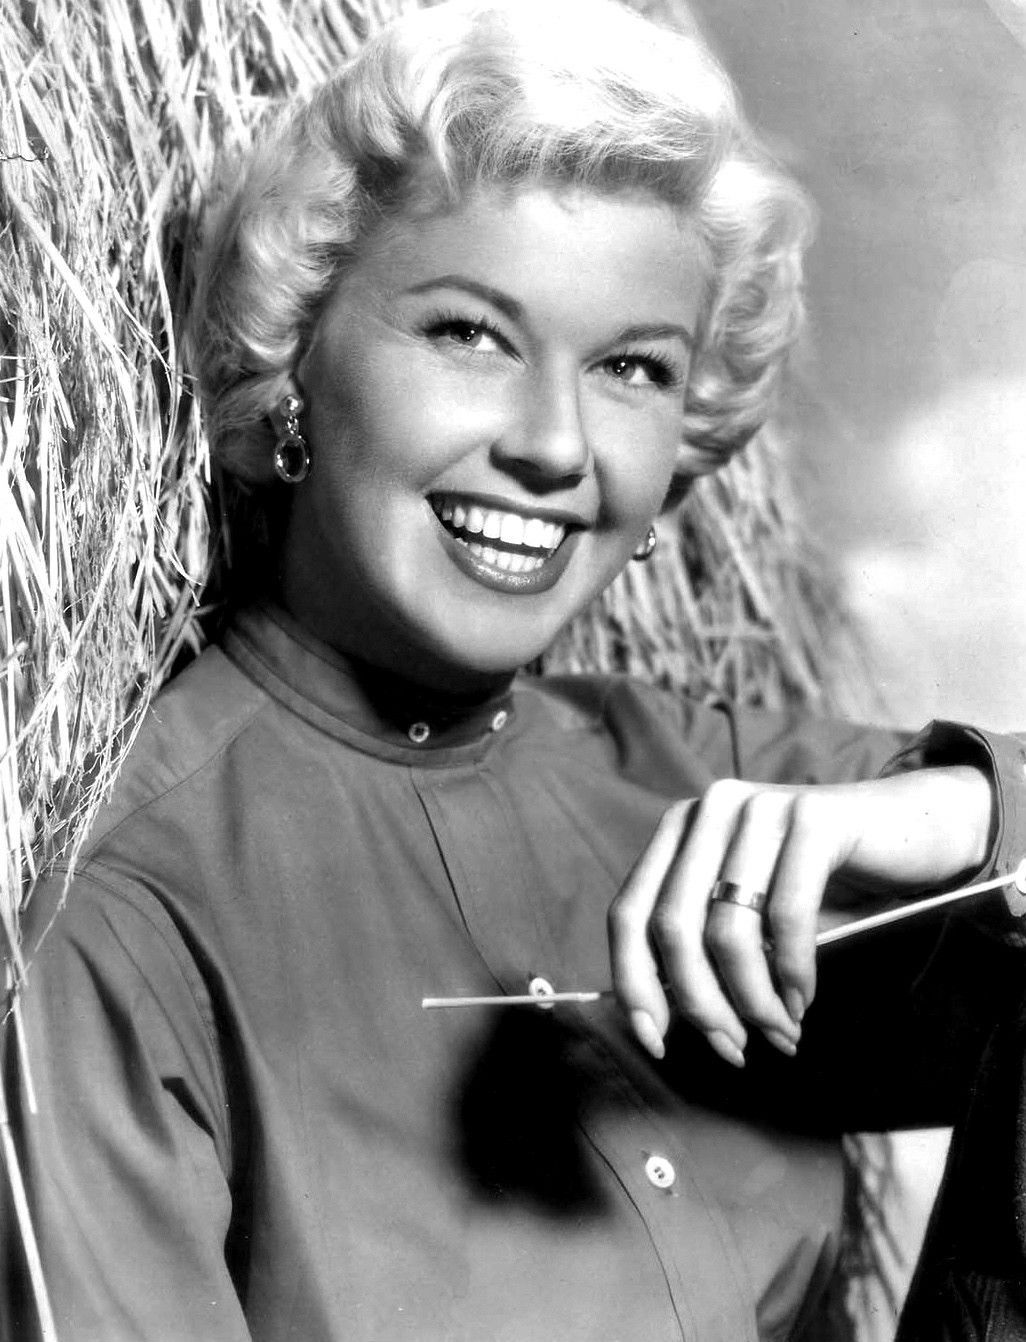 3 75 Gbp Doris Day Lovely Quality Glossy Photo Print A4 Or A5 Hollywood Actress Ebay Collectibles Doris Day Movies Movie Stars Hollywood